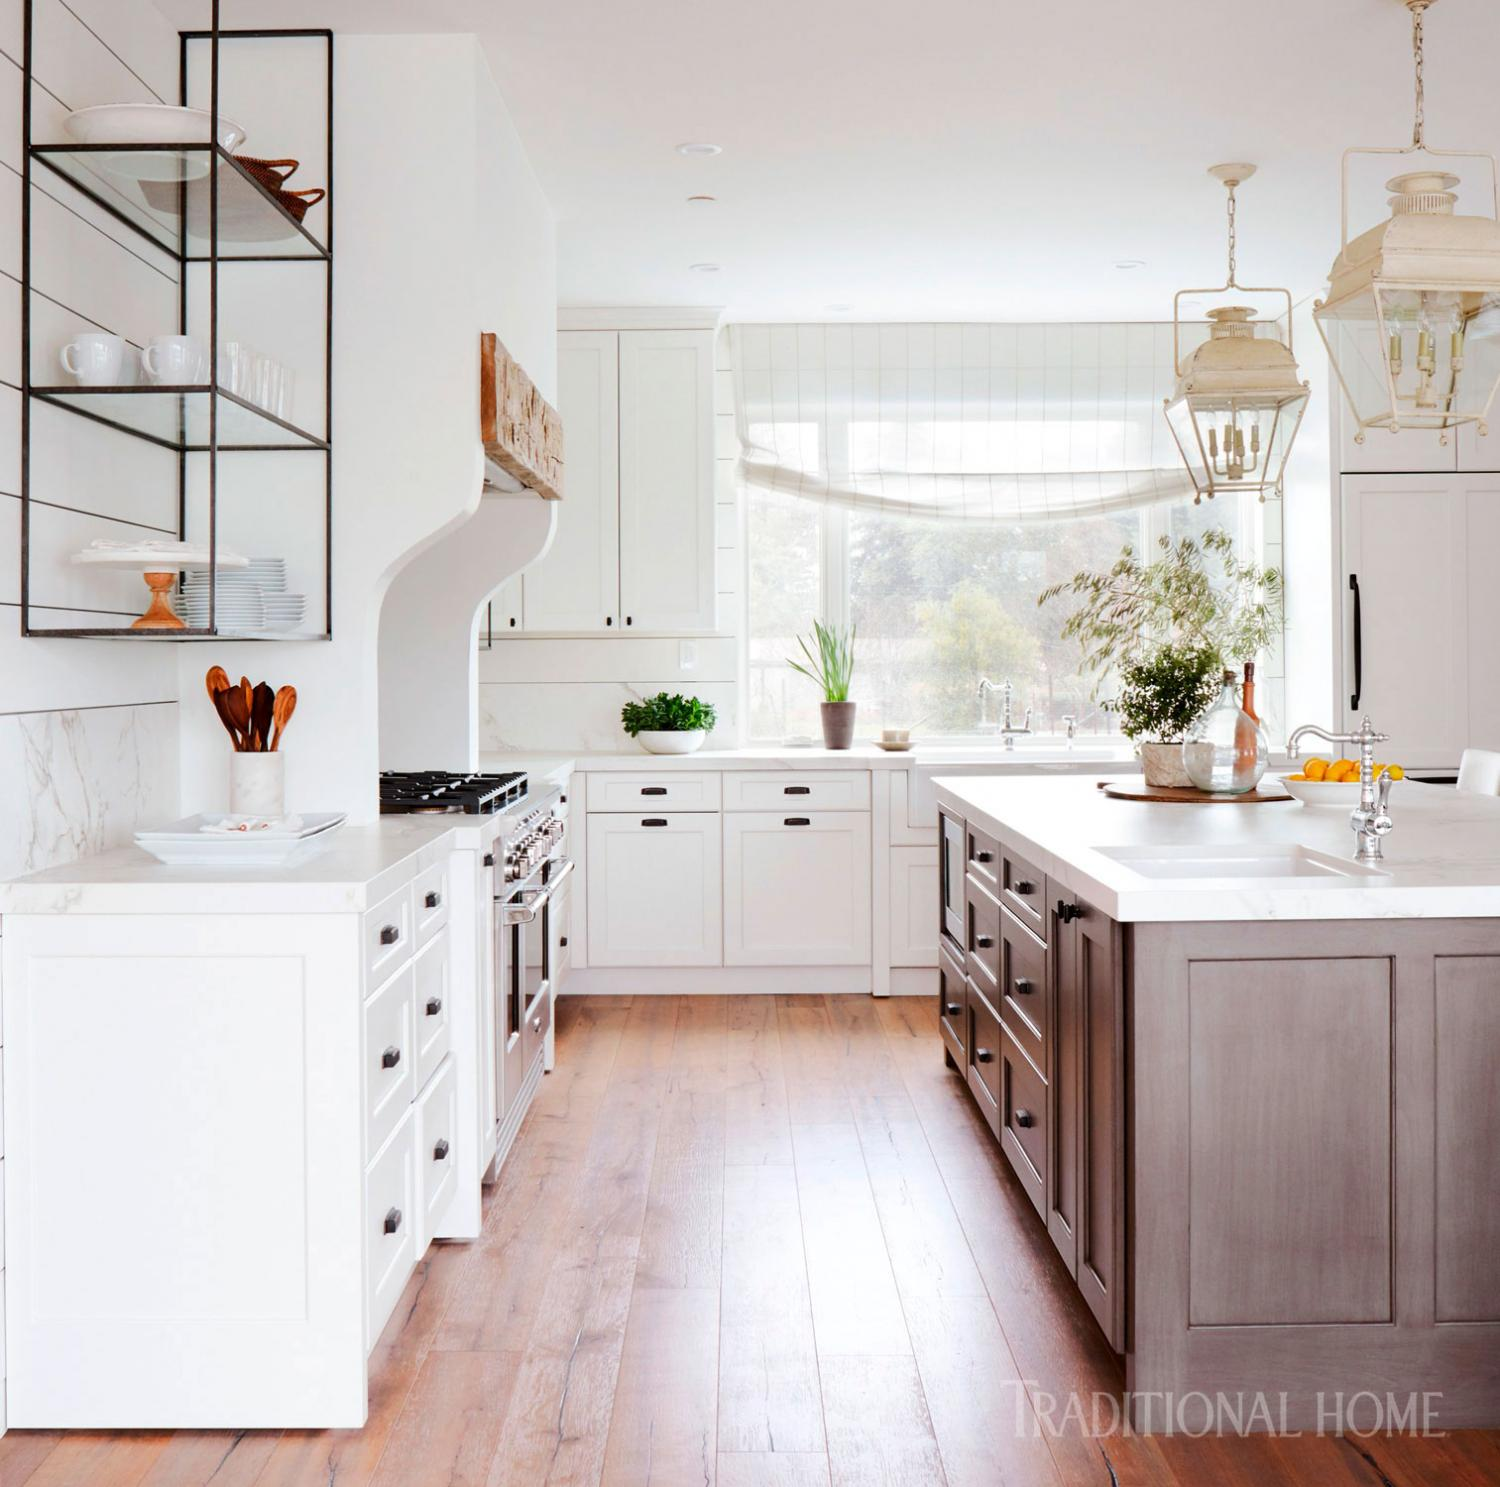 Traditional White Kitchen Cabinets Ideas: White Farmhouse-Style Kitchen